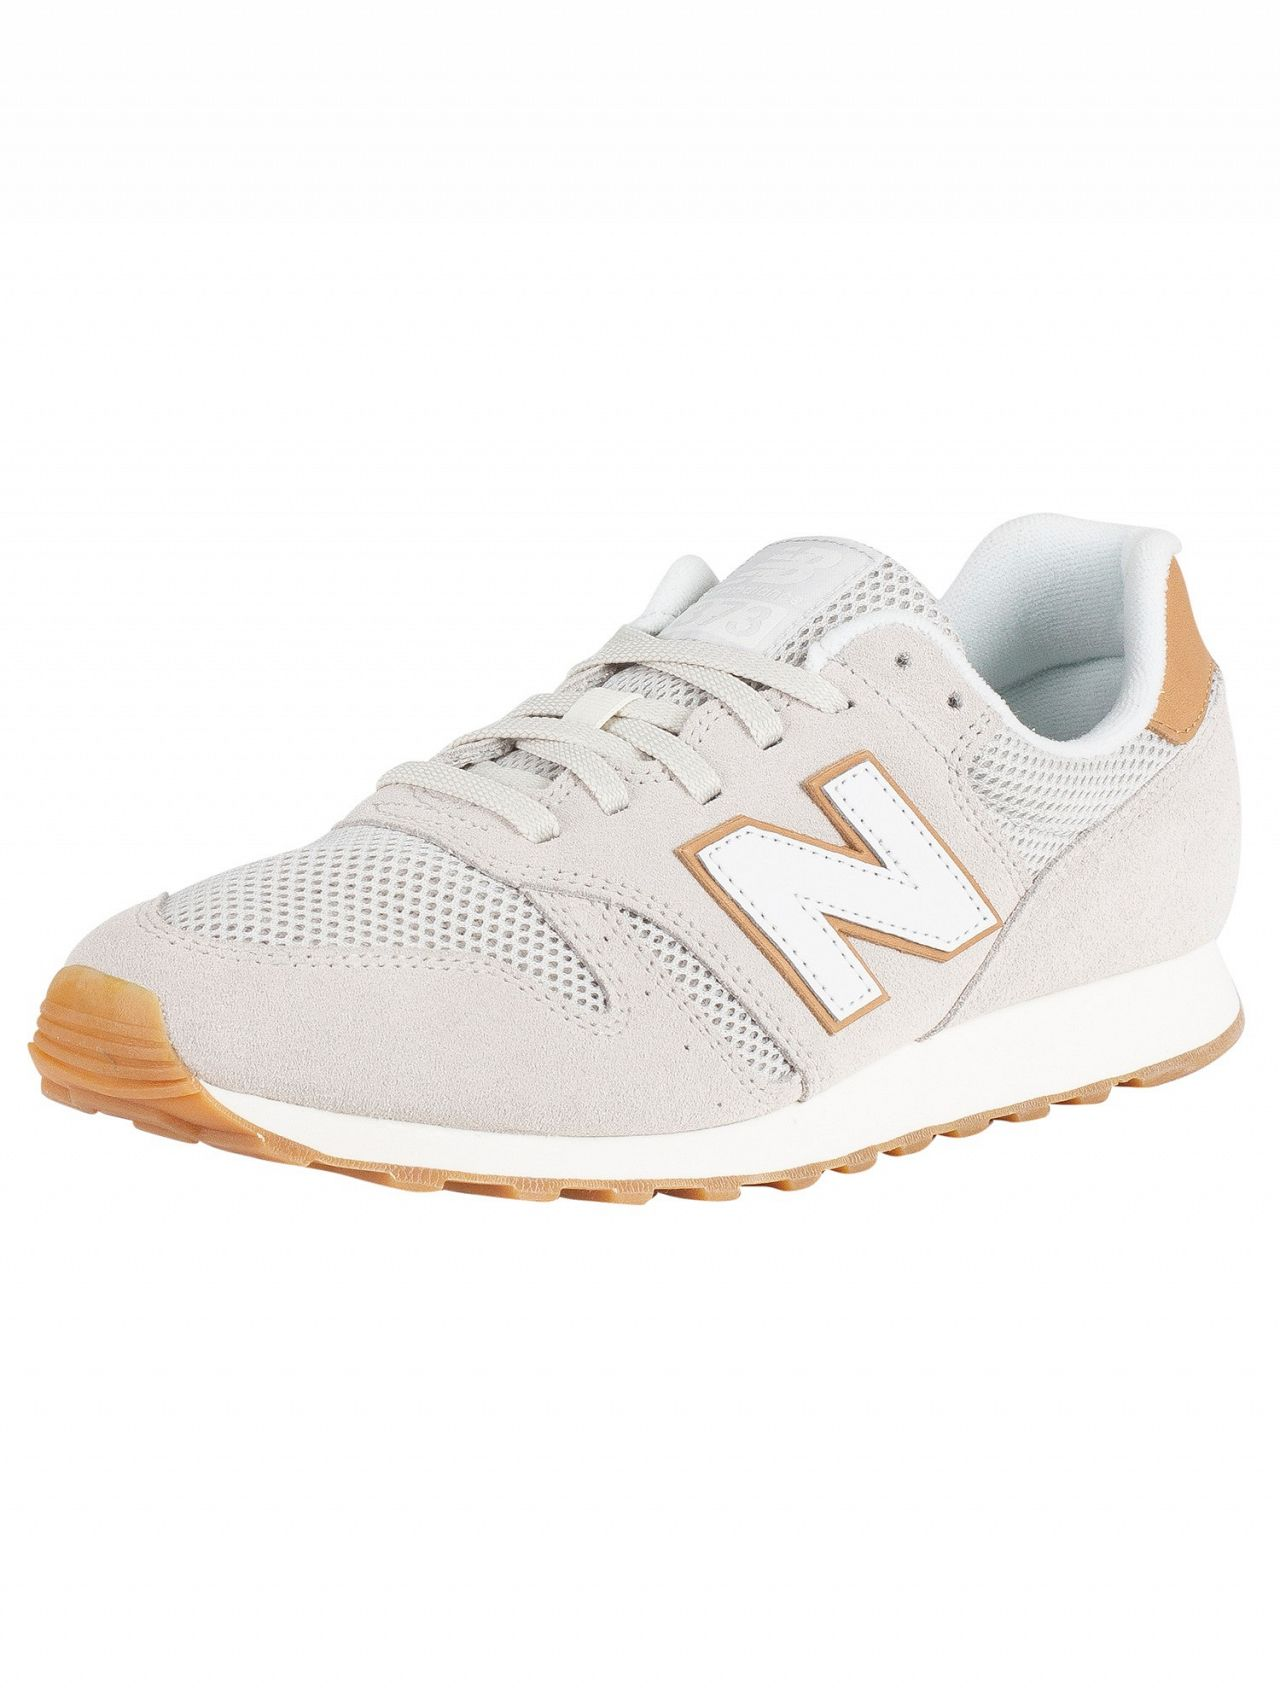 cc489fad00 New Balance Beige/Tan 373 Suede Trainers